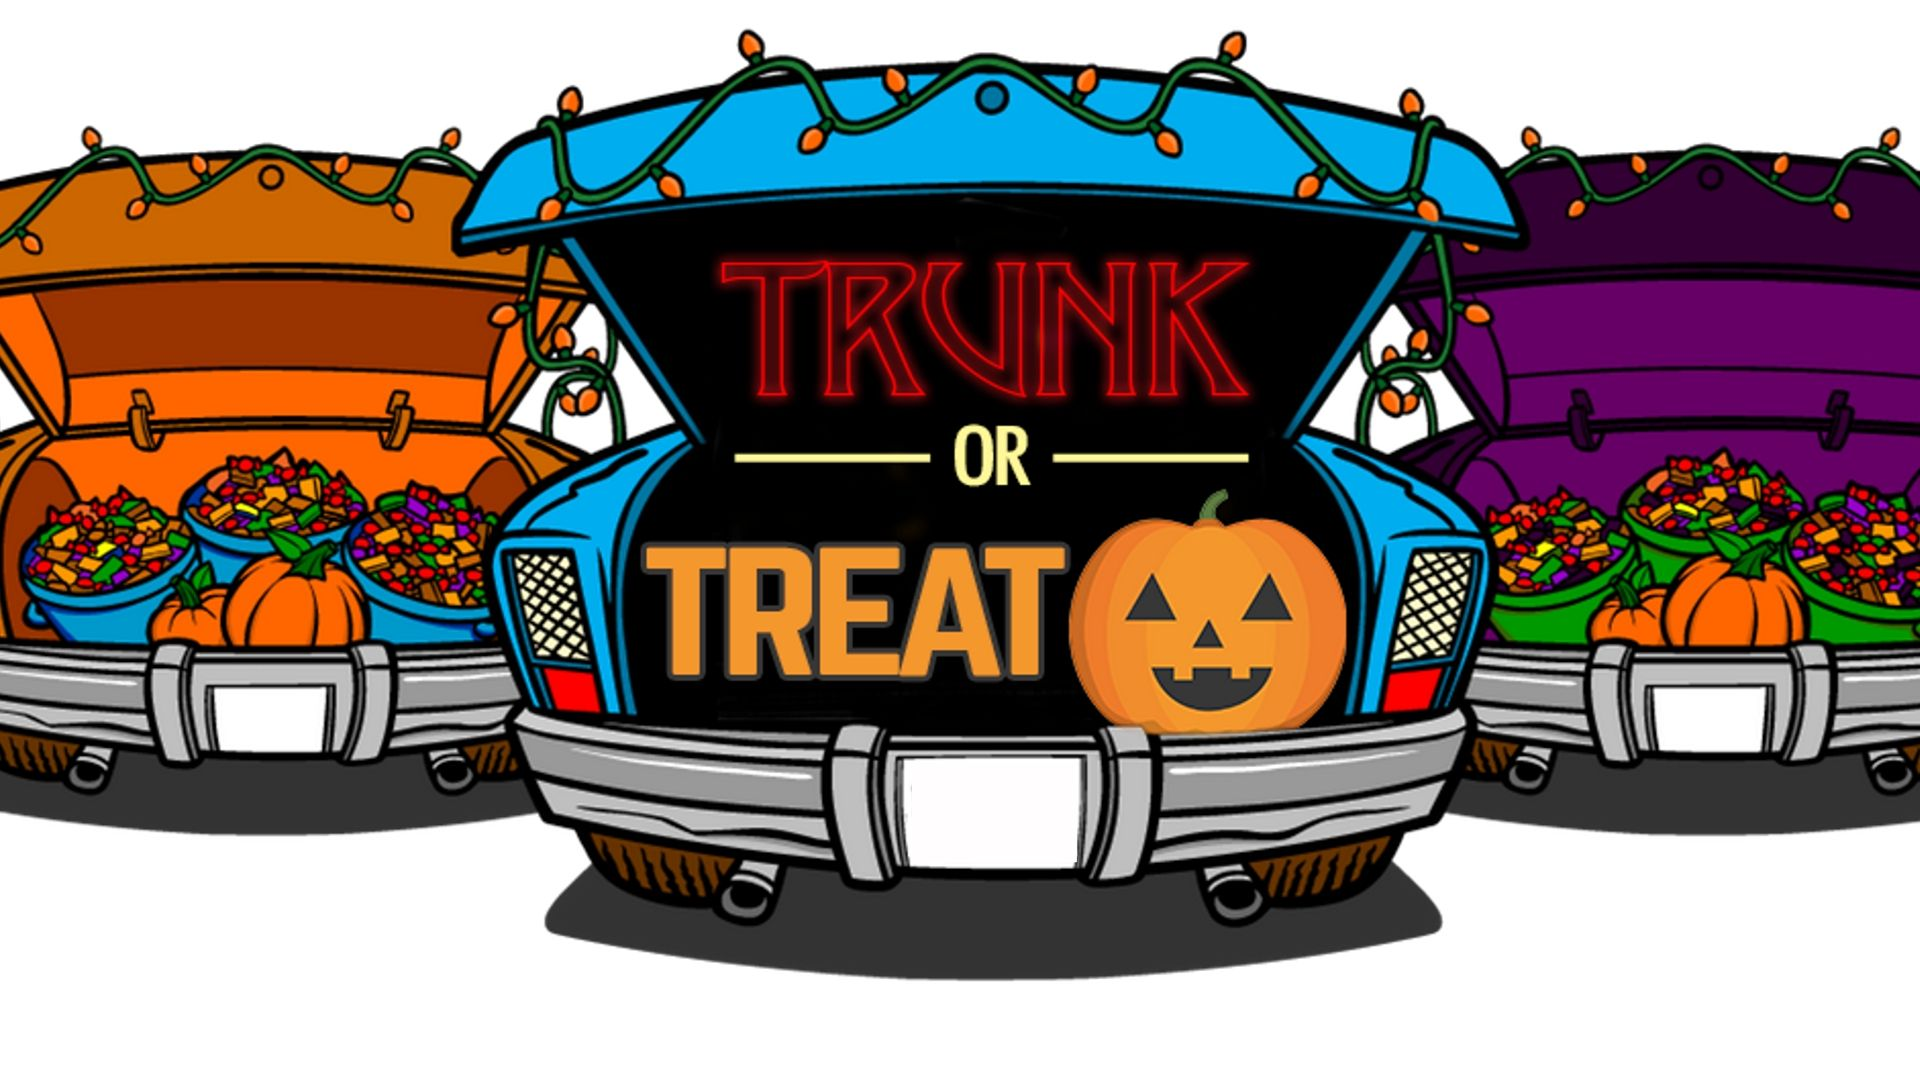 TrunkorTreat slide